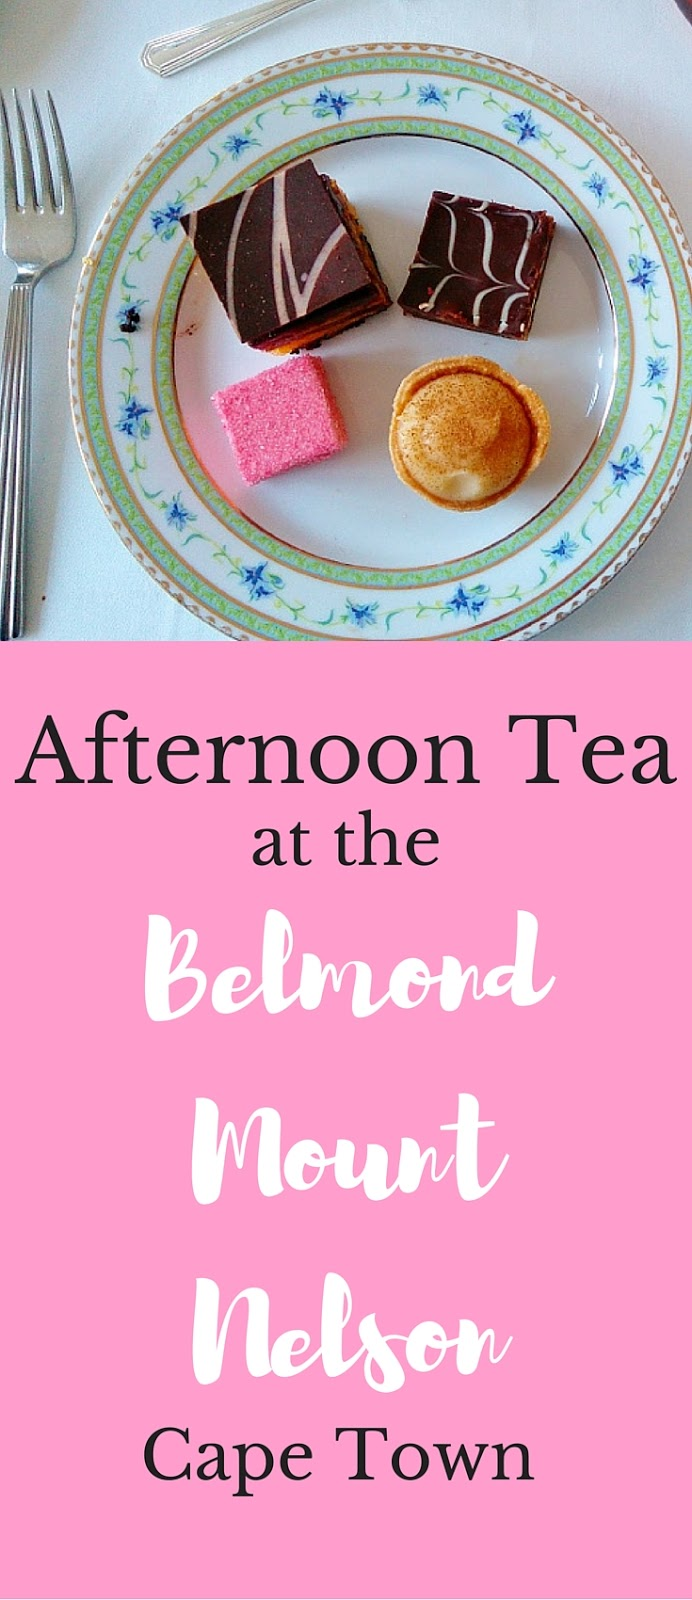 Afternoon Tea at the Belmond Mount Nelson